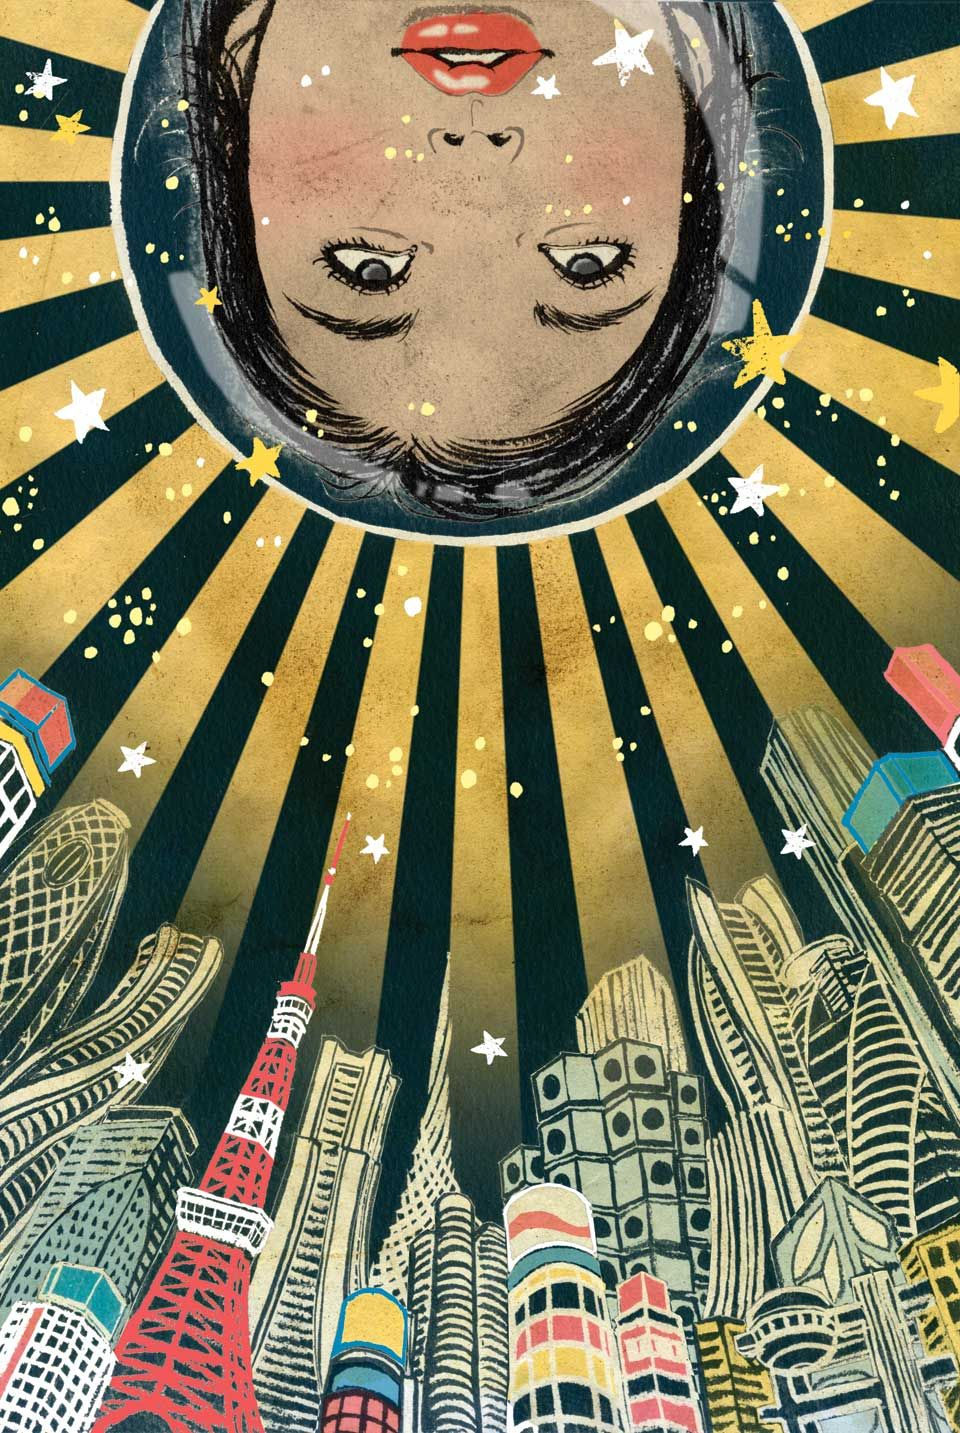 The Future is Japanese: Science Fiction Futures and Brand New Fantasies from and about Japan. http://www.goodreads.com/book/show/12331479-the-future-is-japanese